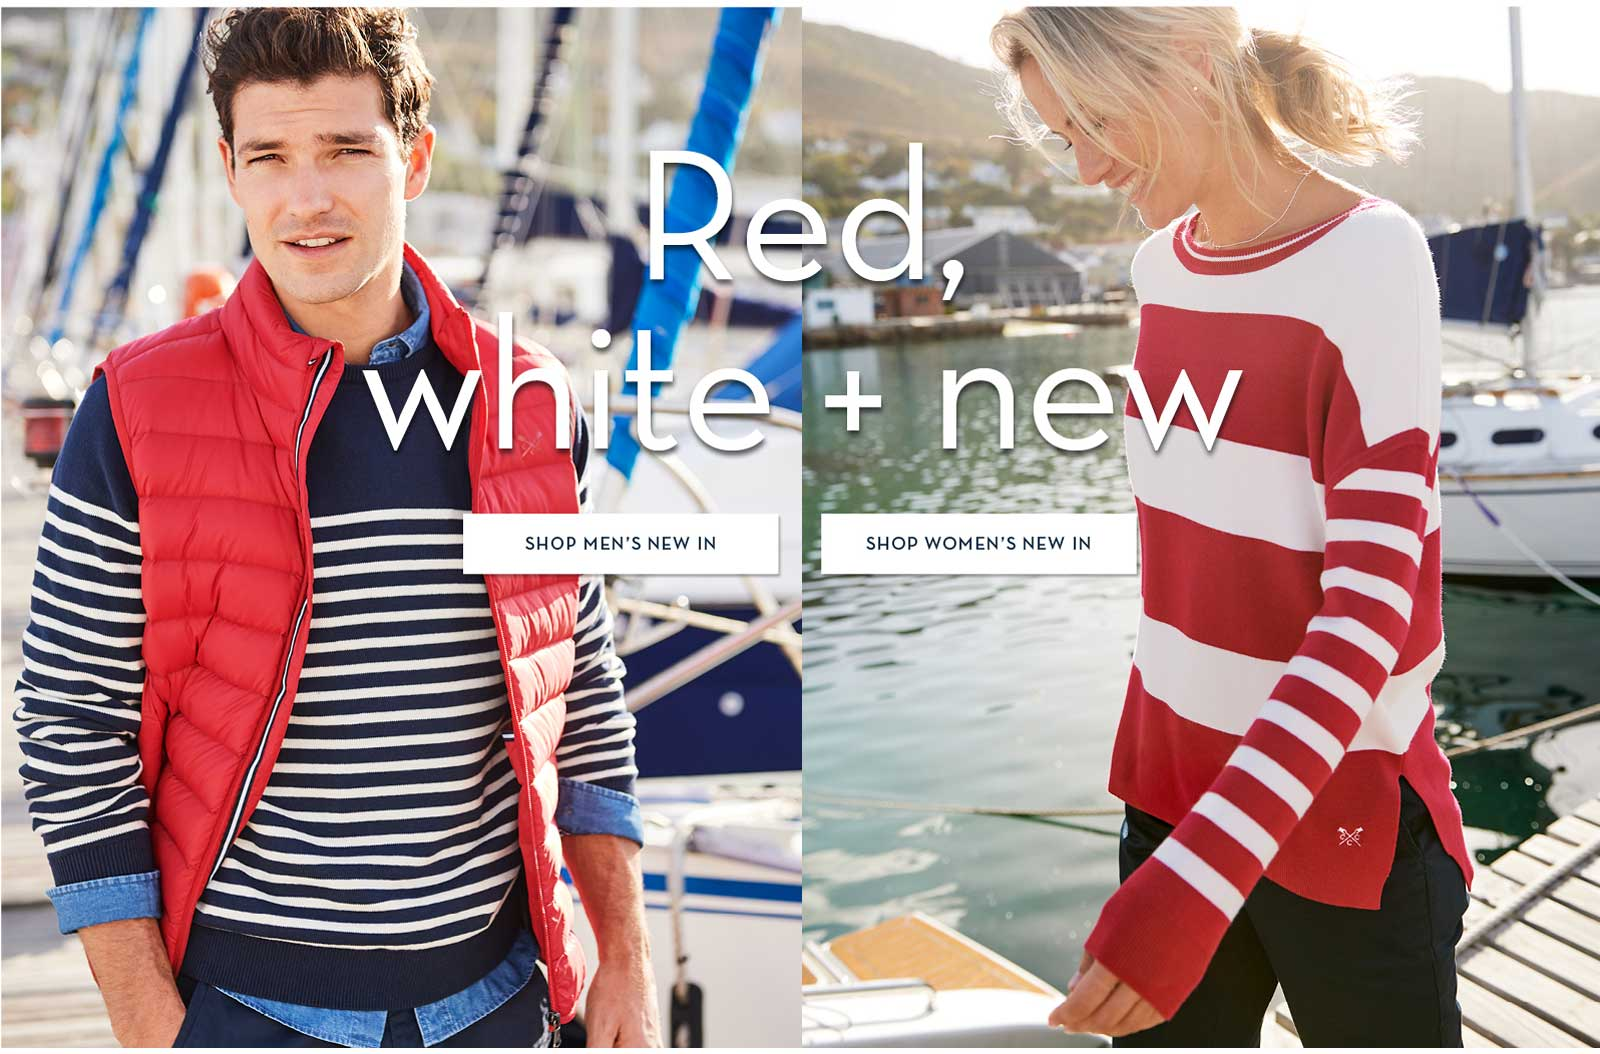 Red, White + New. Shop New In.